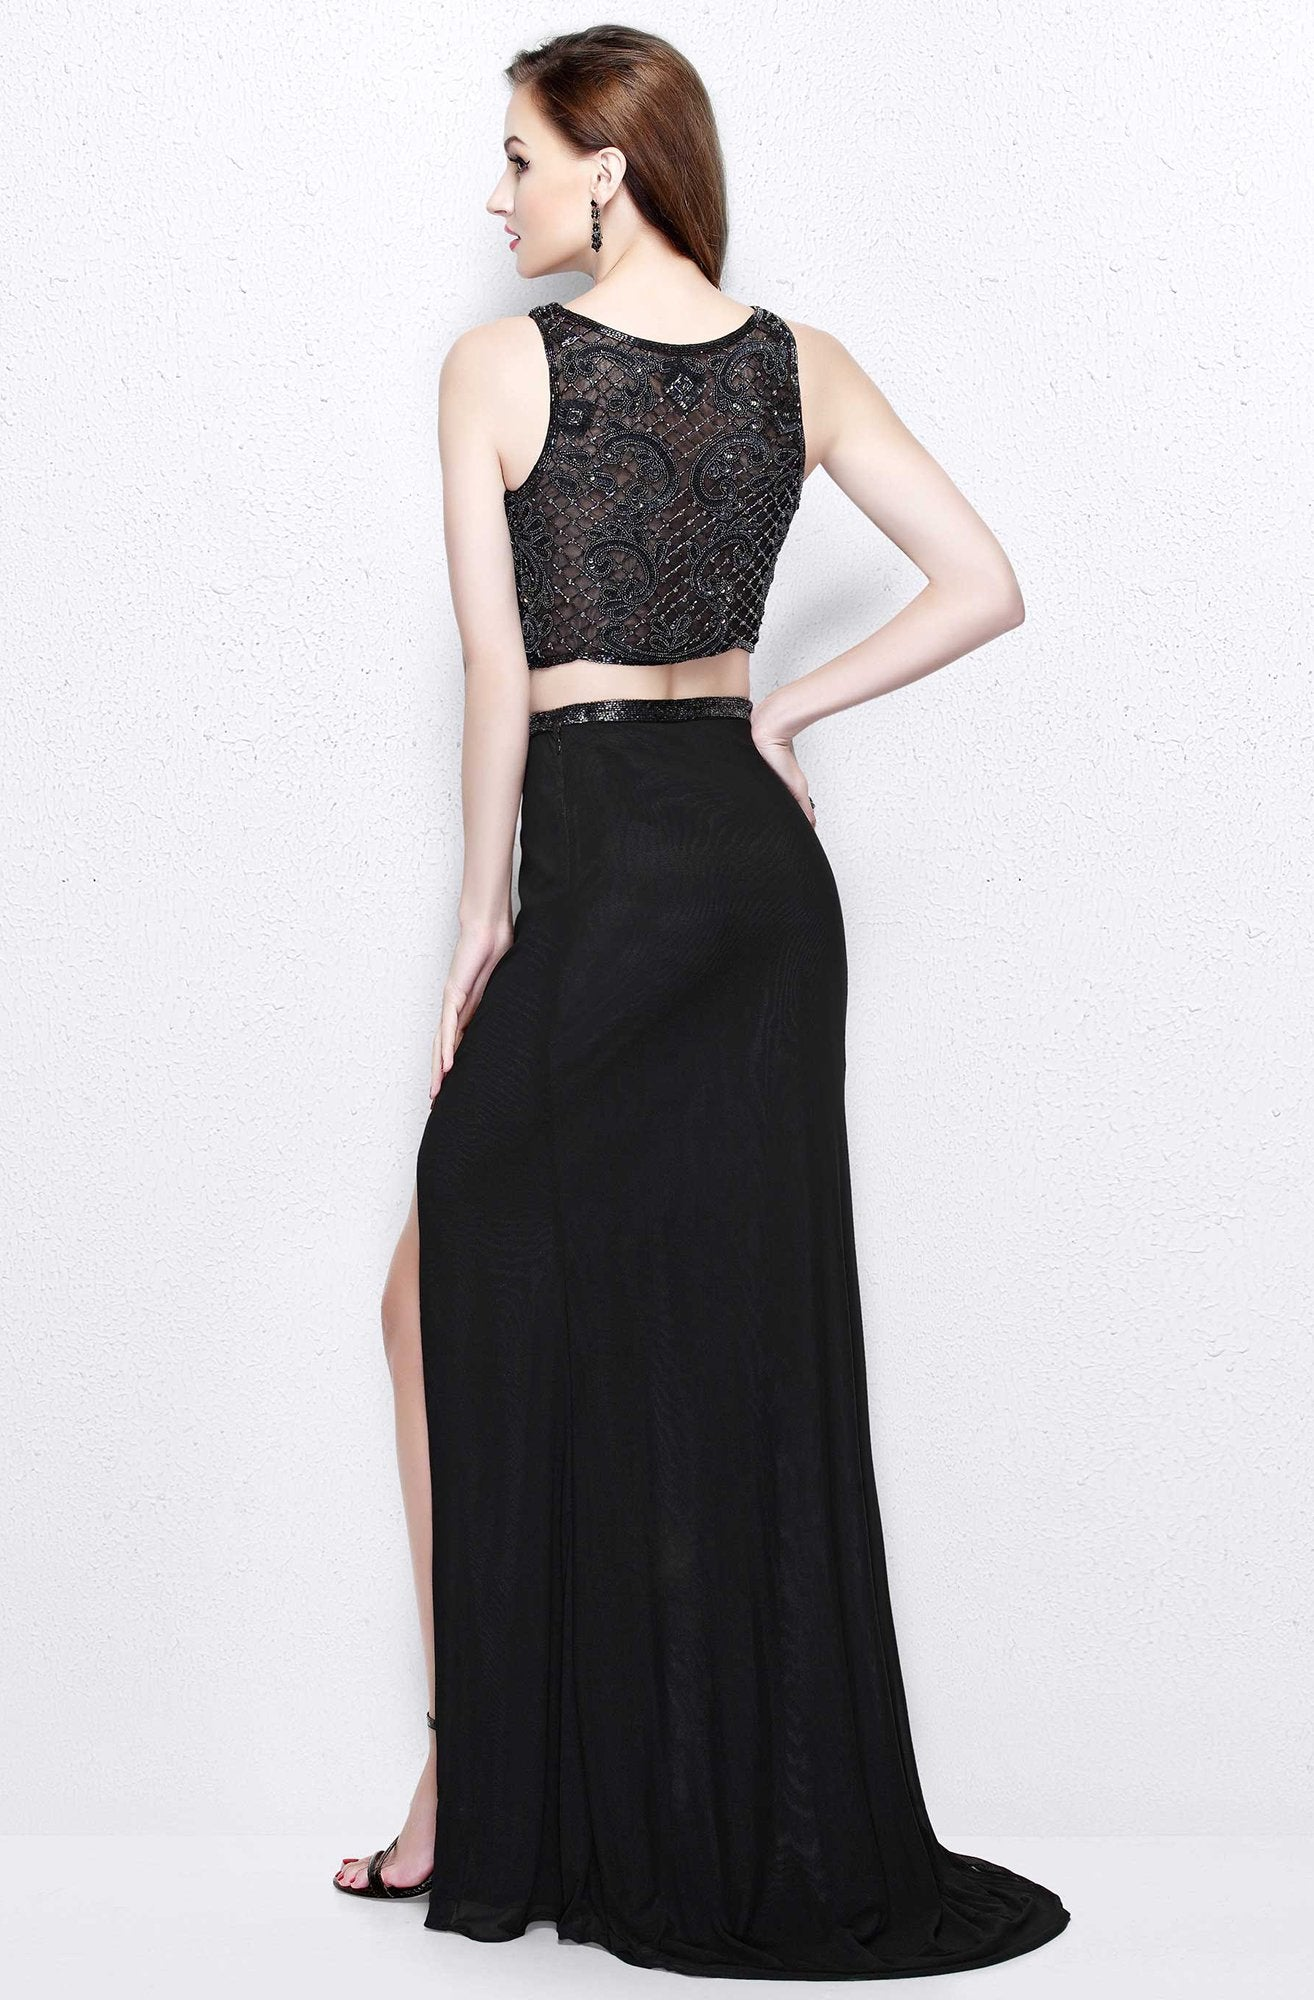 Primavera Couture - Two Piece Sleeveless Long Gown with Slit 1846 in Black